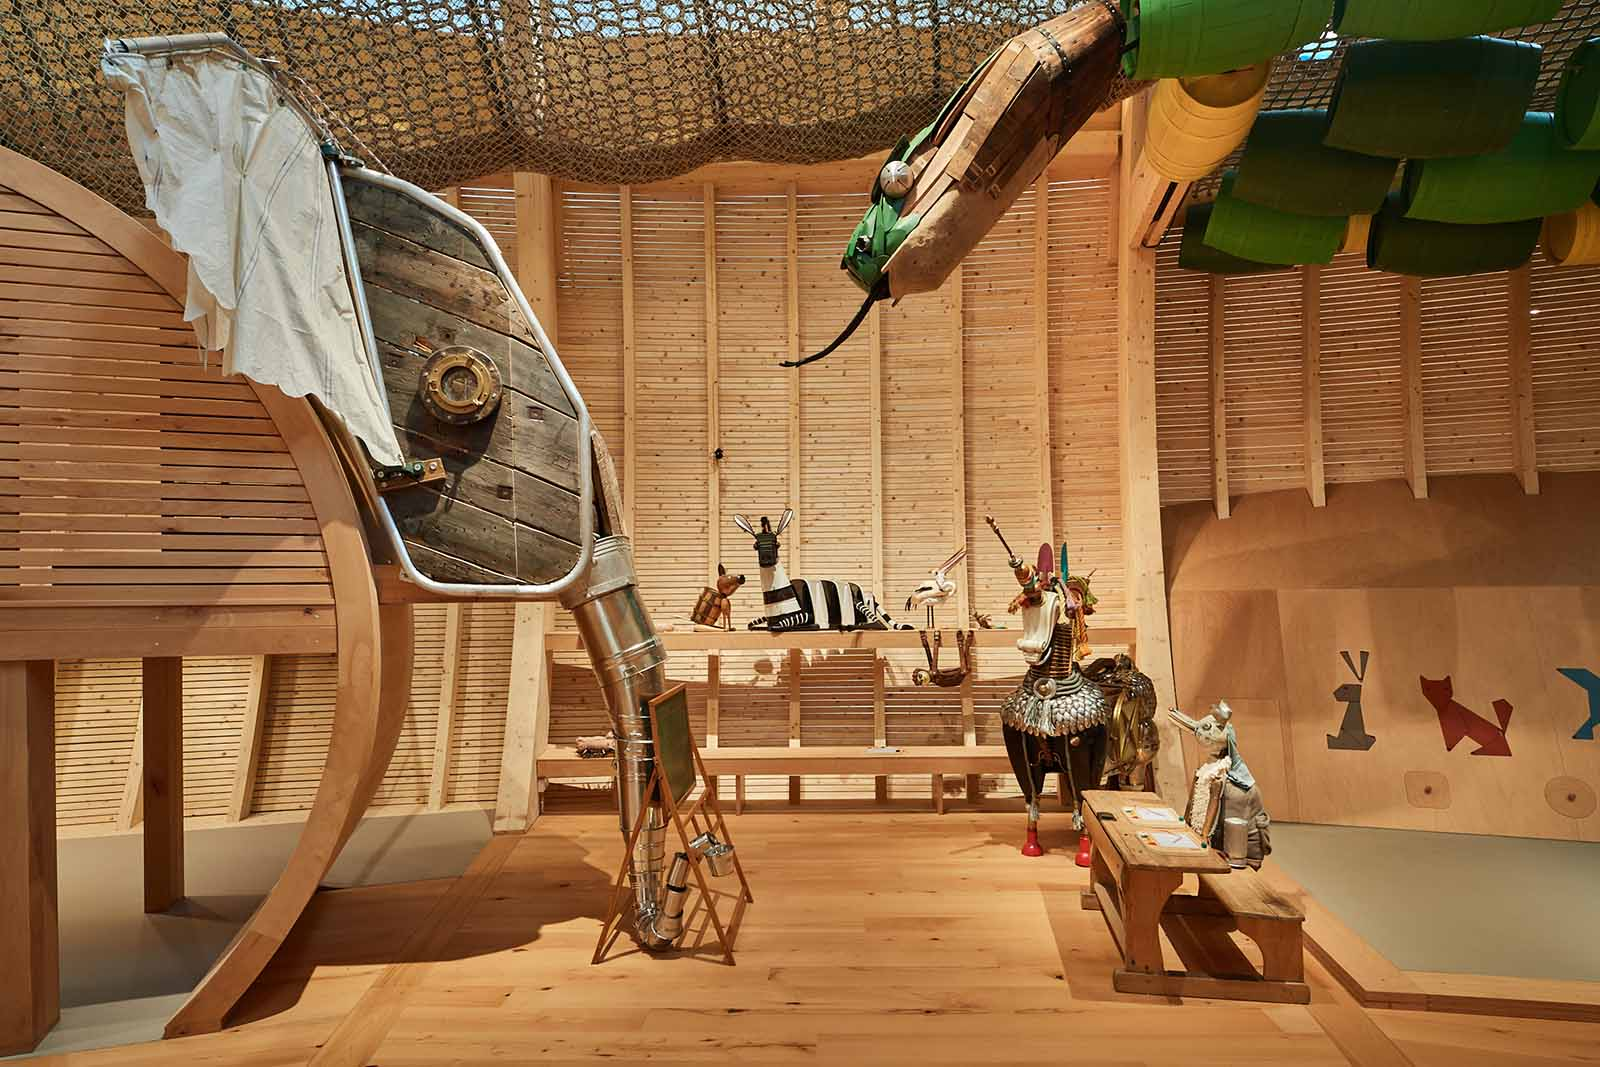 ANOHA Children's World ignites imagination in youth of Berlin